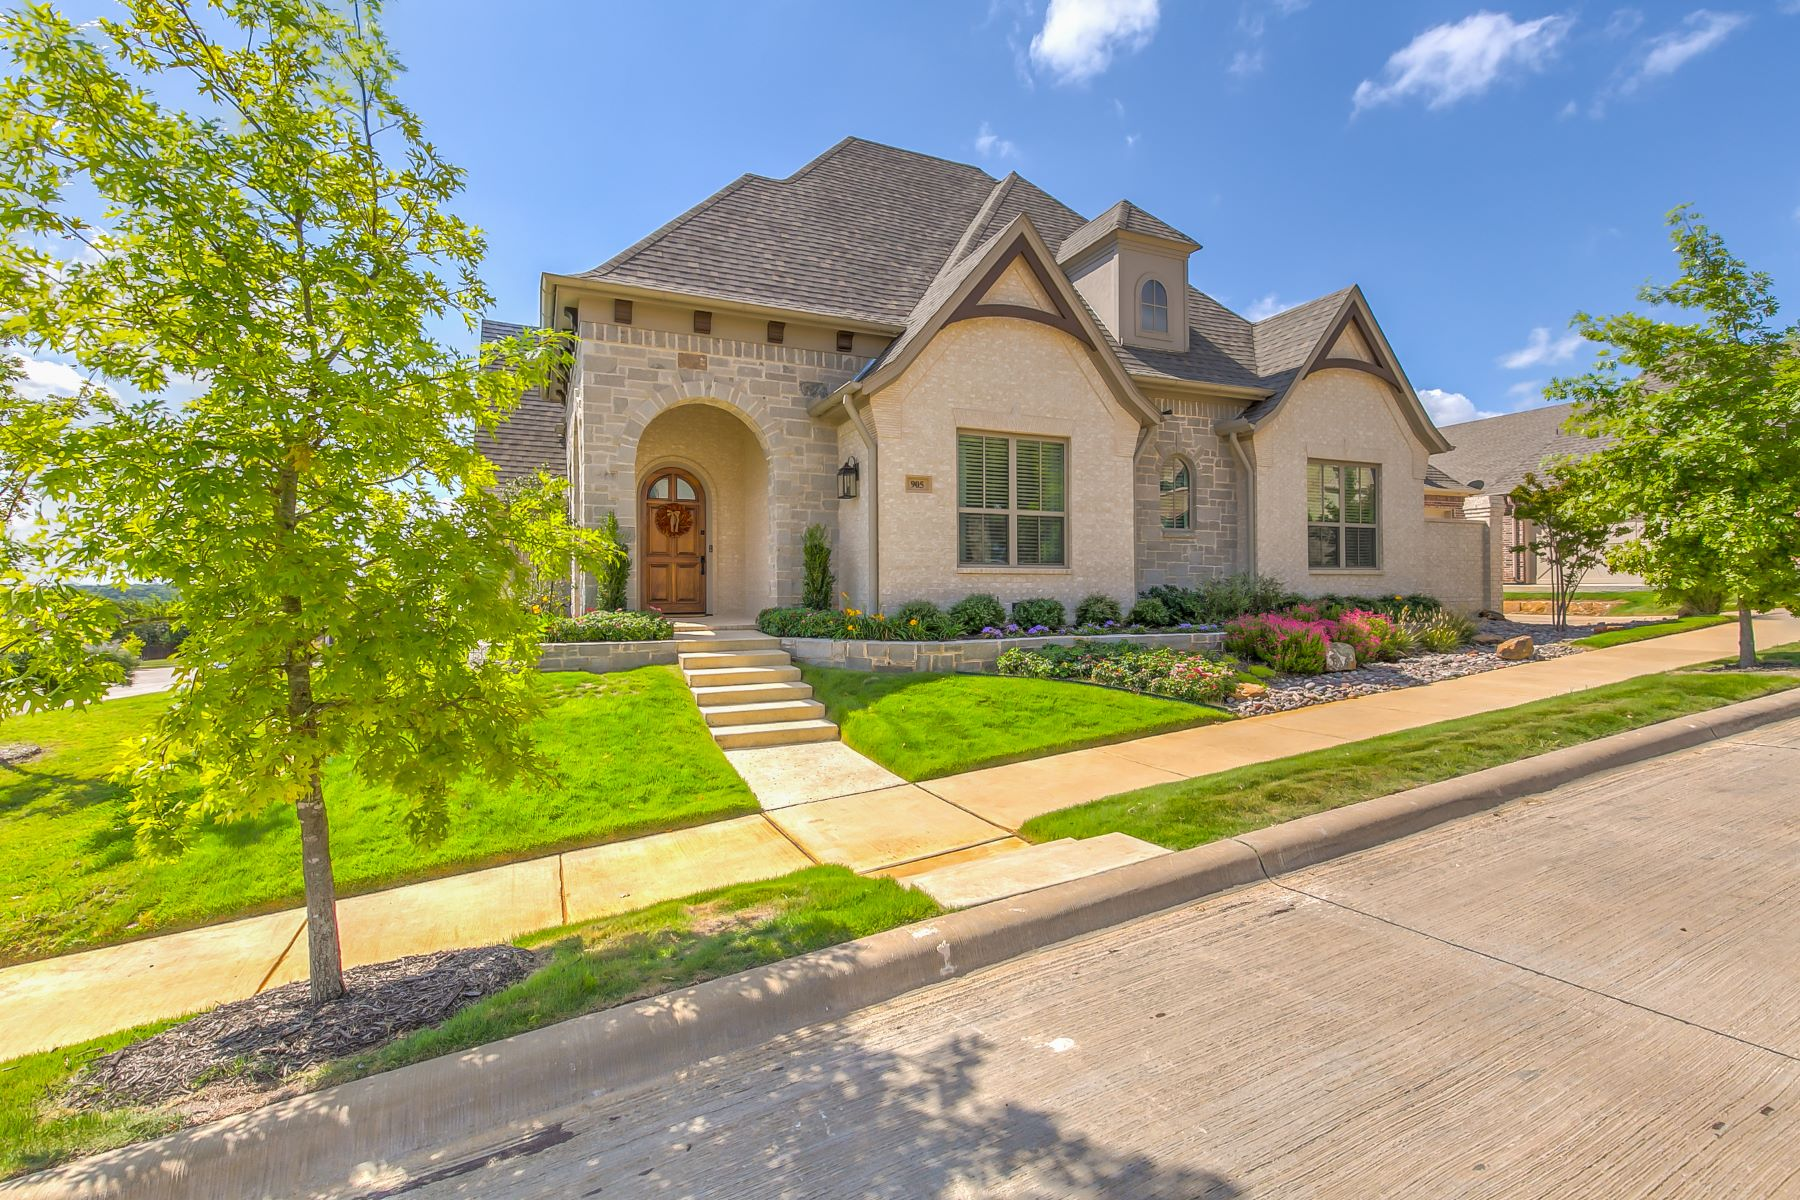 Single Family Homes for Sale at Hilltop Custom in Hidden Knoll 905 Winding Ridge Trail Southlake, Texas 76092 United States